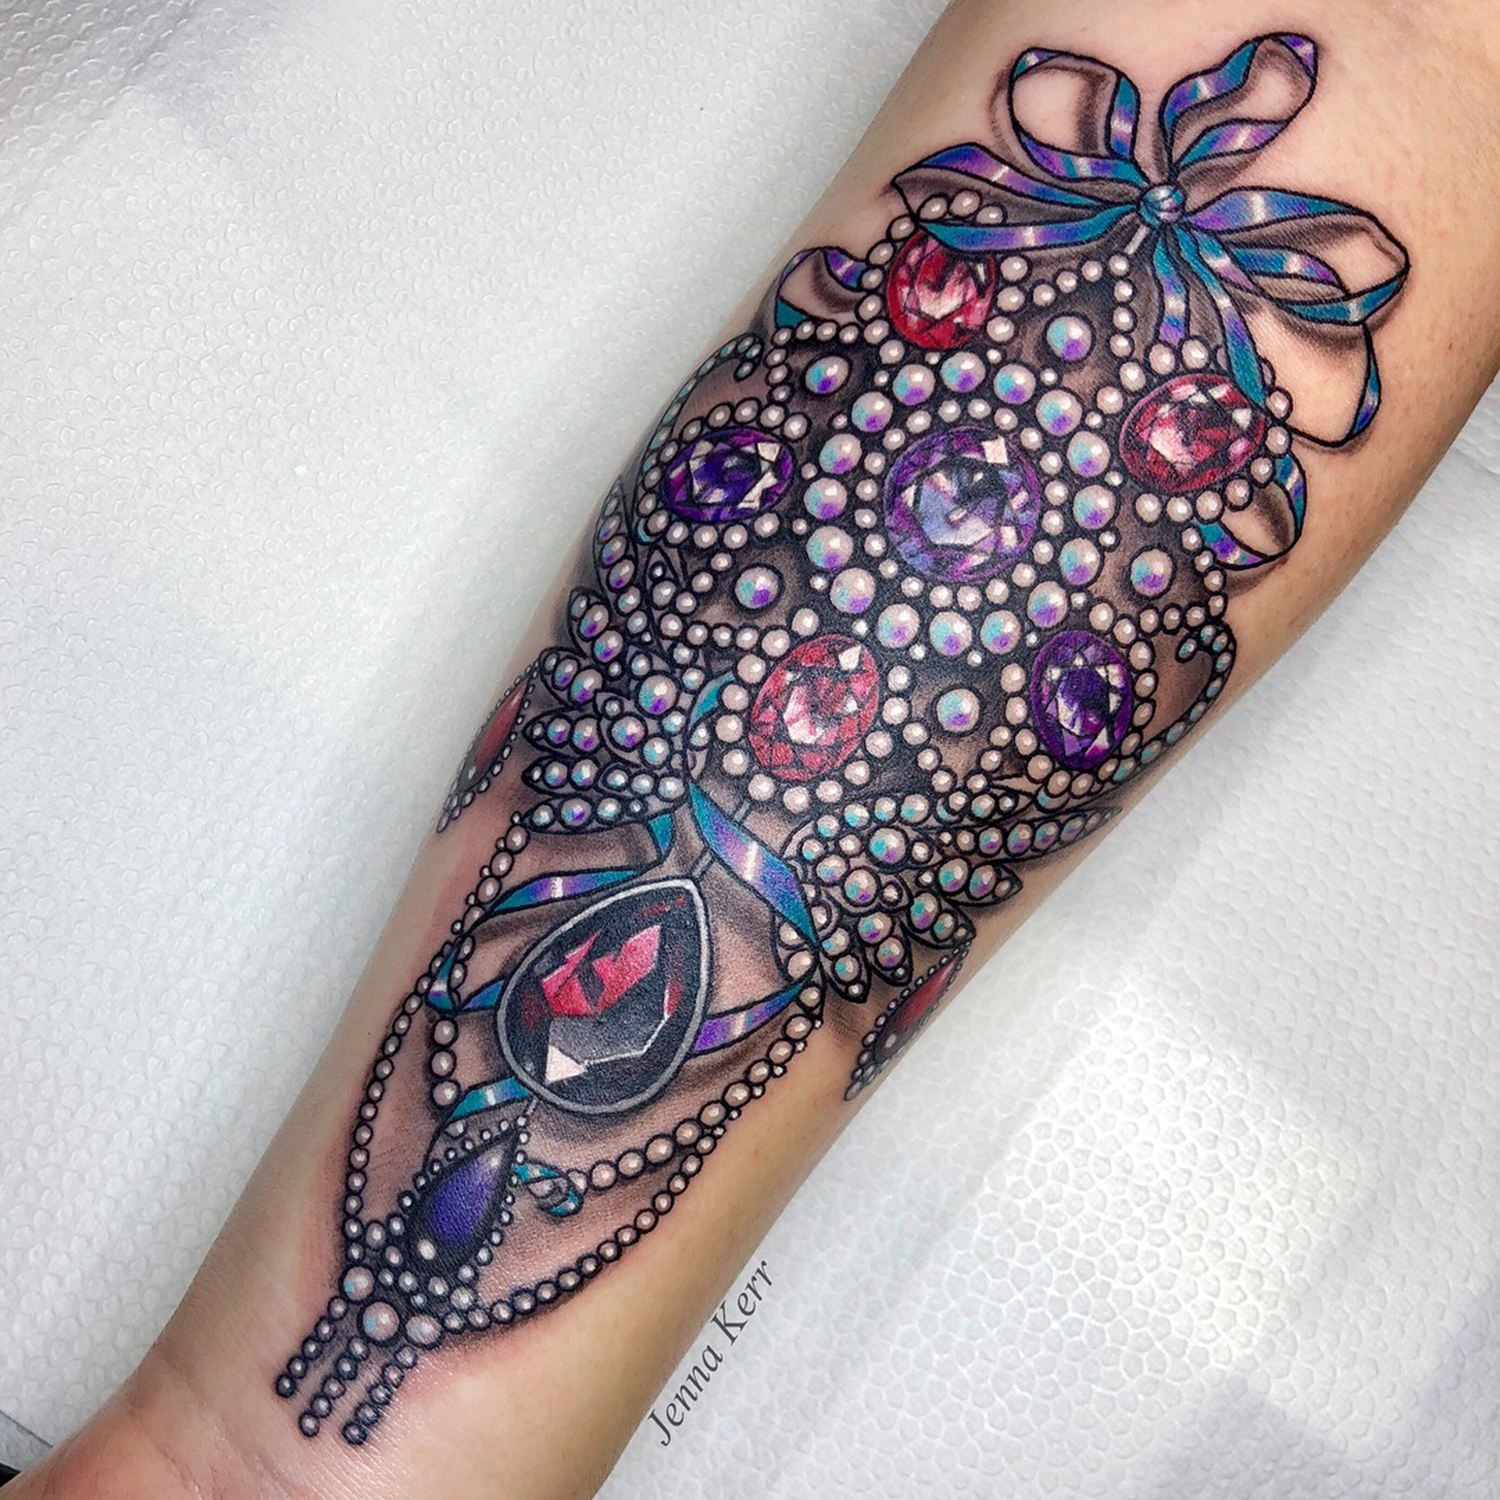 baroque style tattoo, gems, jewllery, jewels